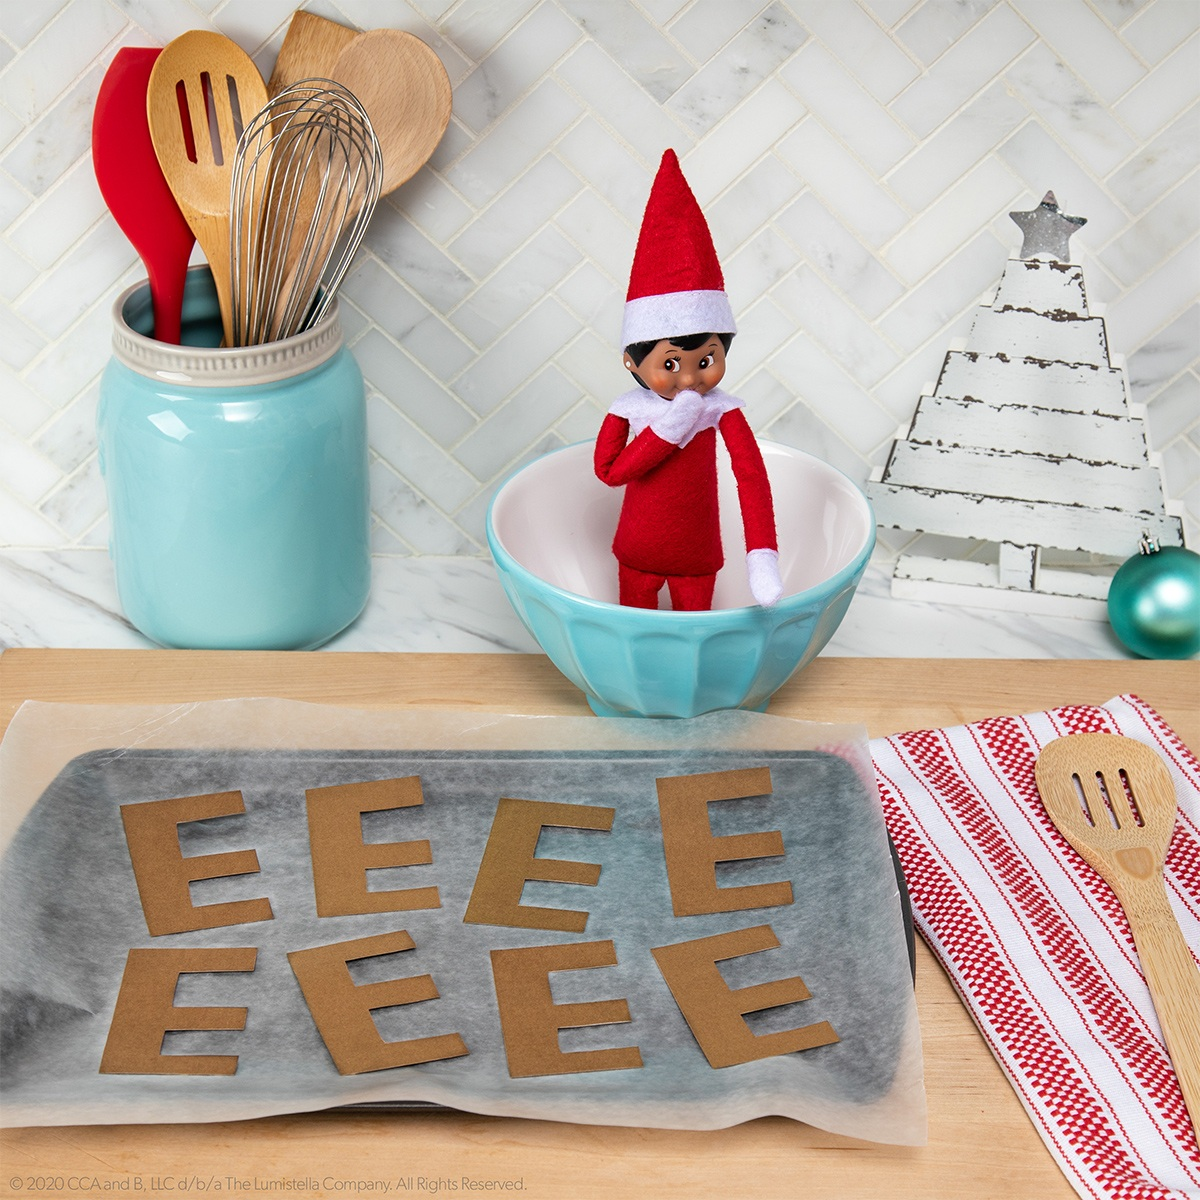 Elf with baking sheet of brown E's